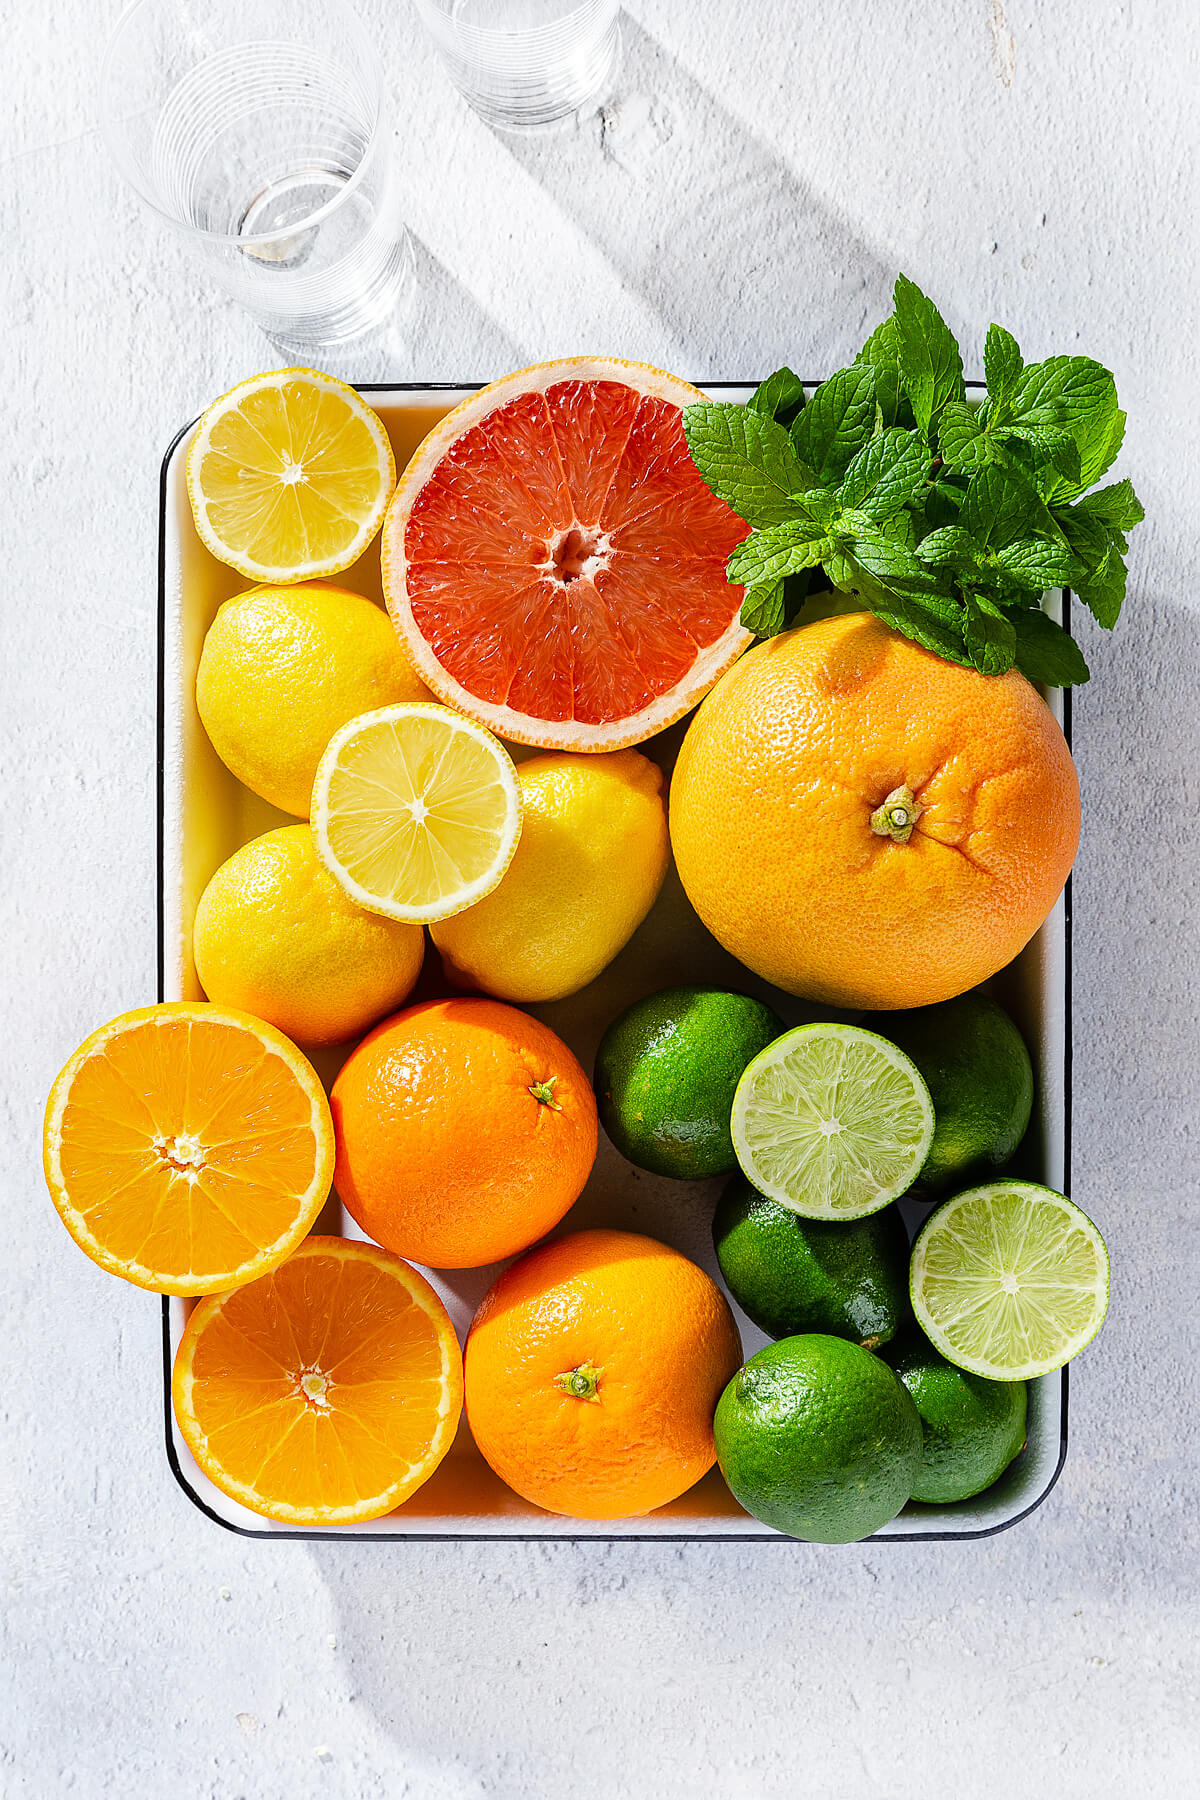 A tray of citrus fruits - oranges, grapefruit, lemon, and limes and some fresh mint.